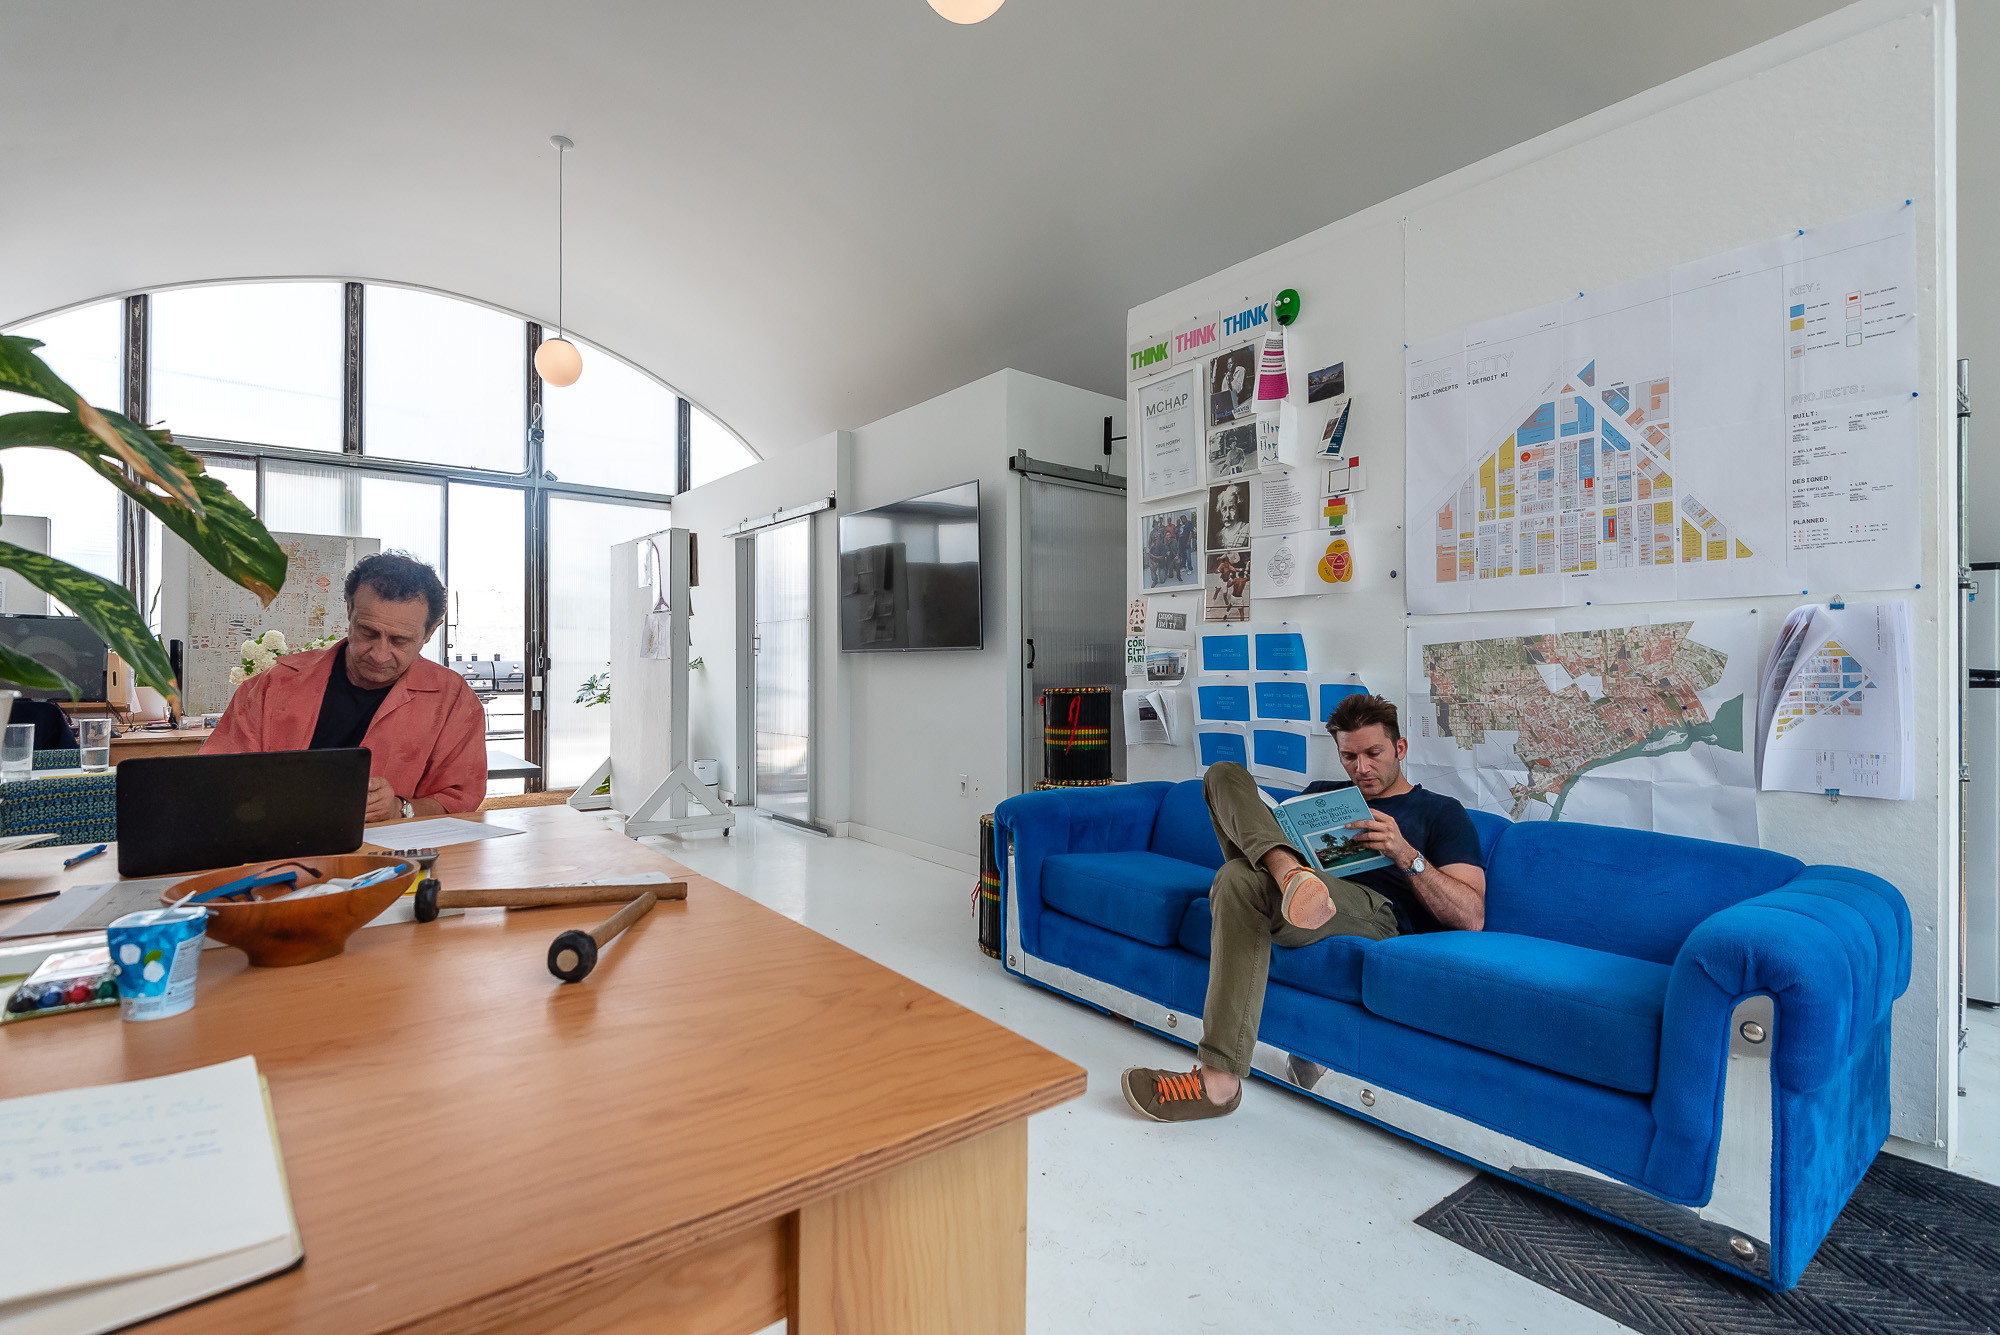 prince_concepts_office_hut_spring-26.jpg